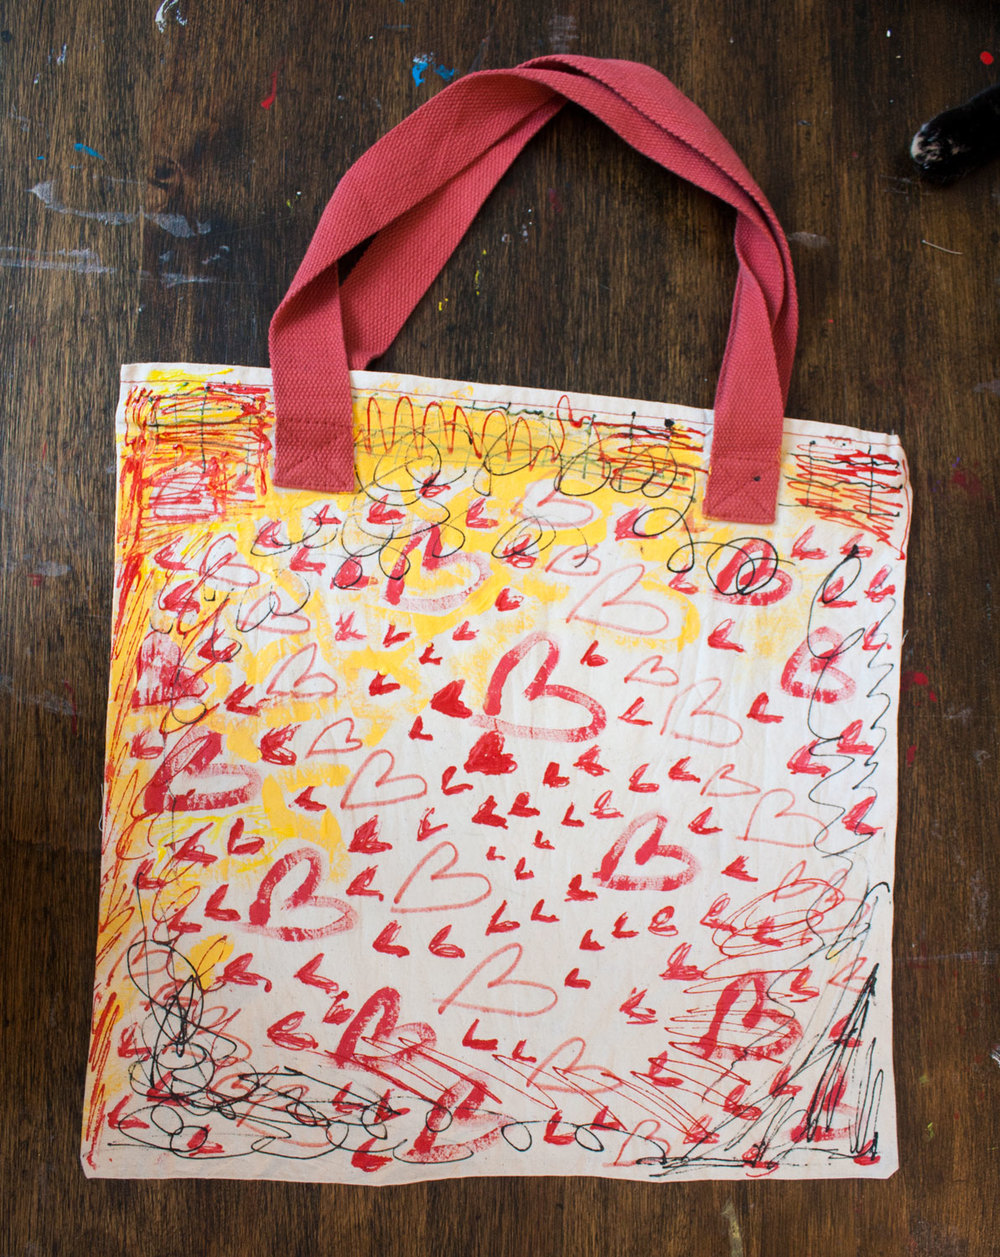 A painted cloth tote bag by Matt Vaillette, 2015